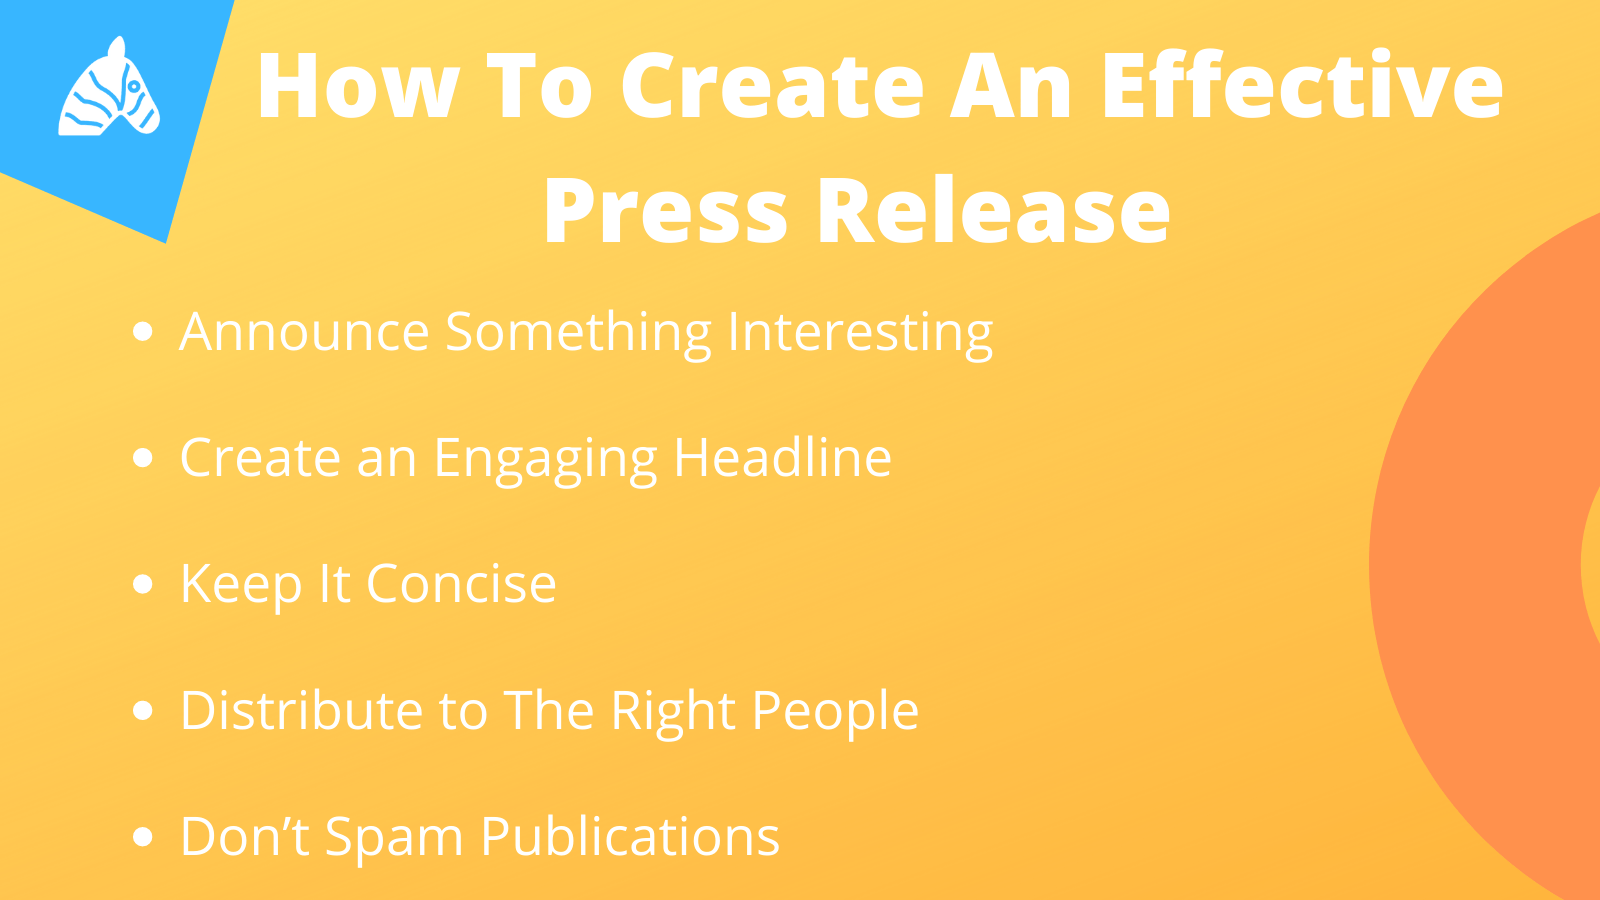 How to create an effective press release for SEO